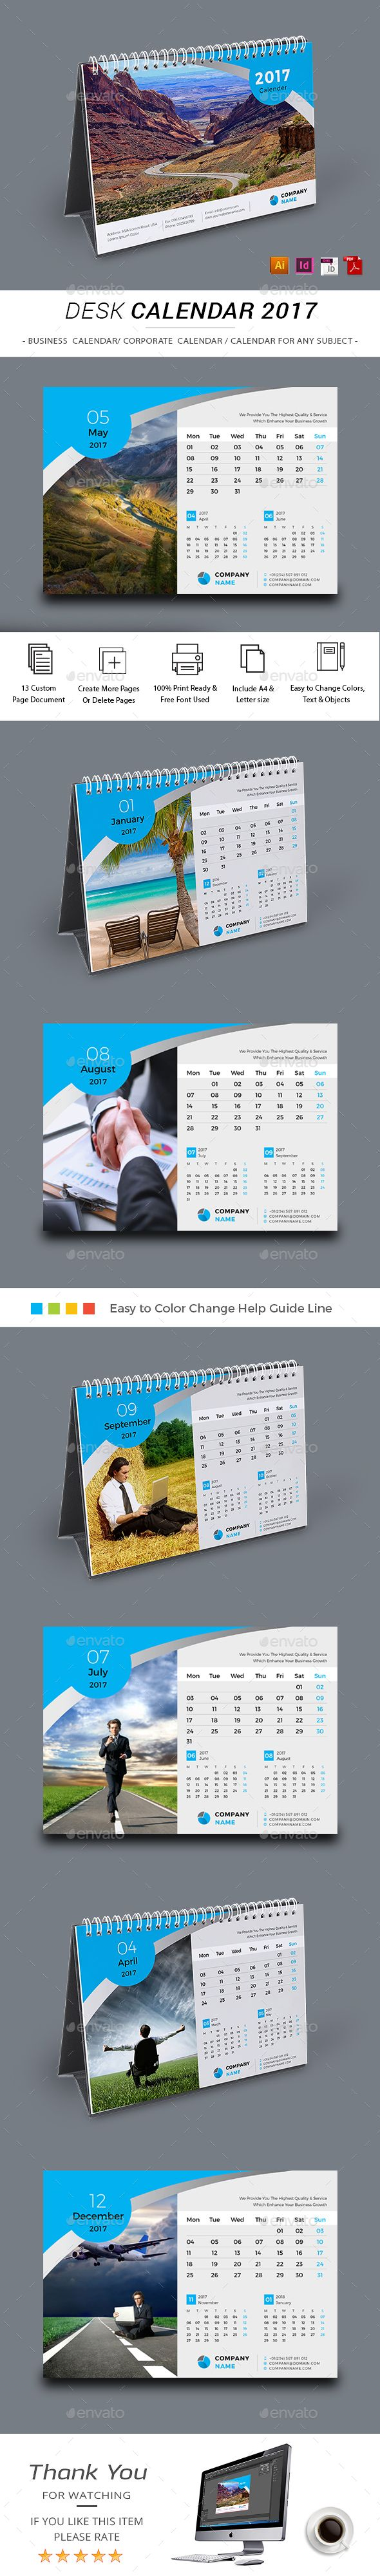 indesign calender templates